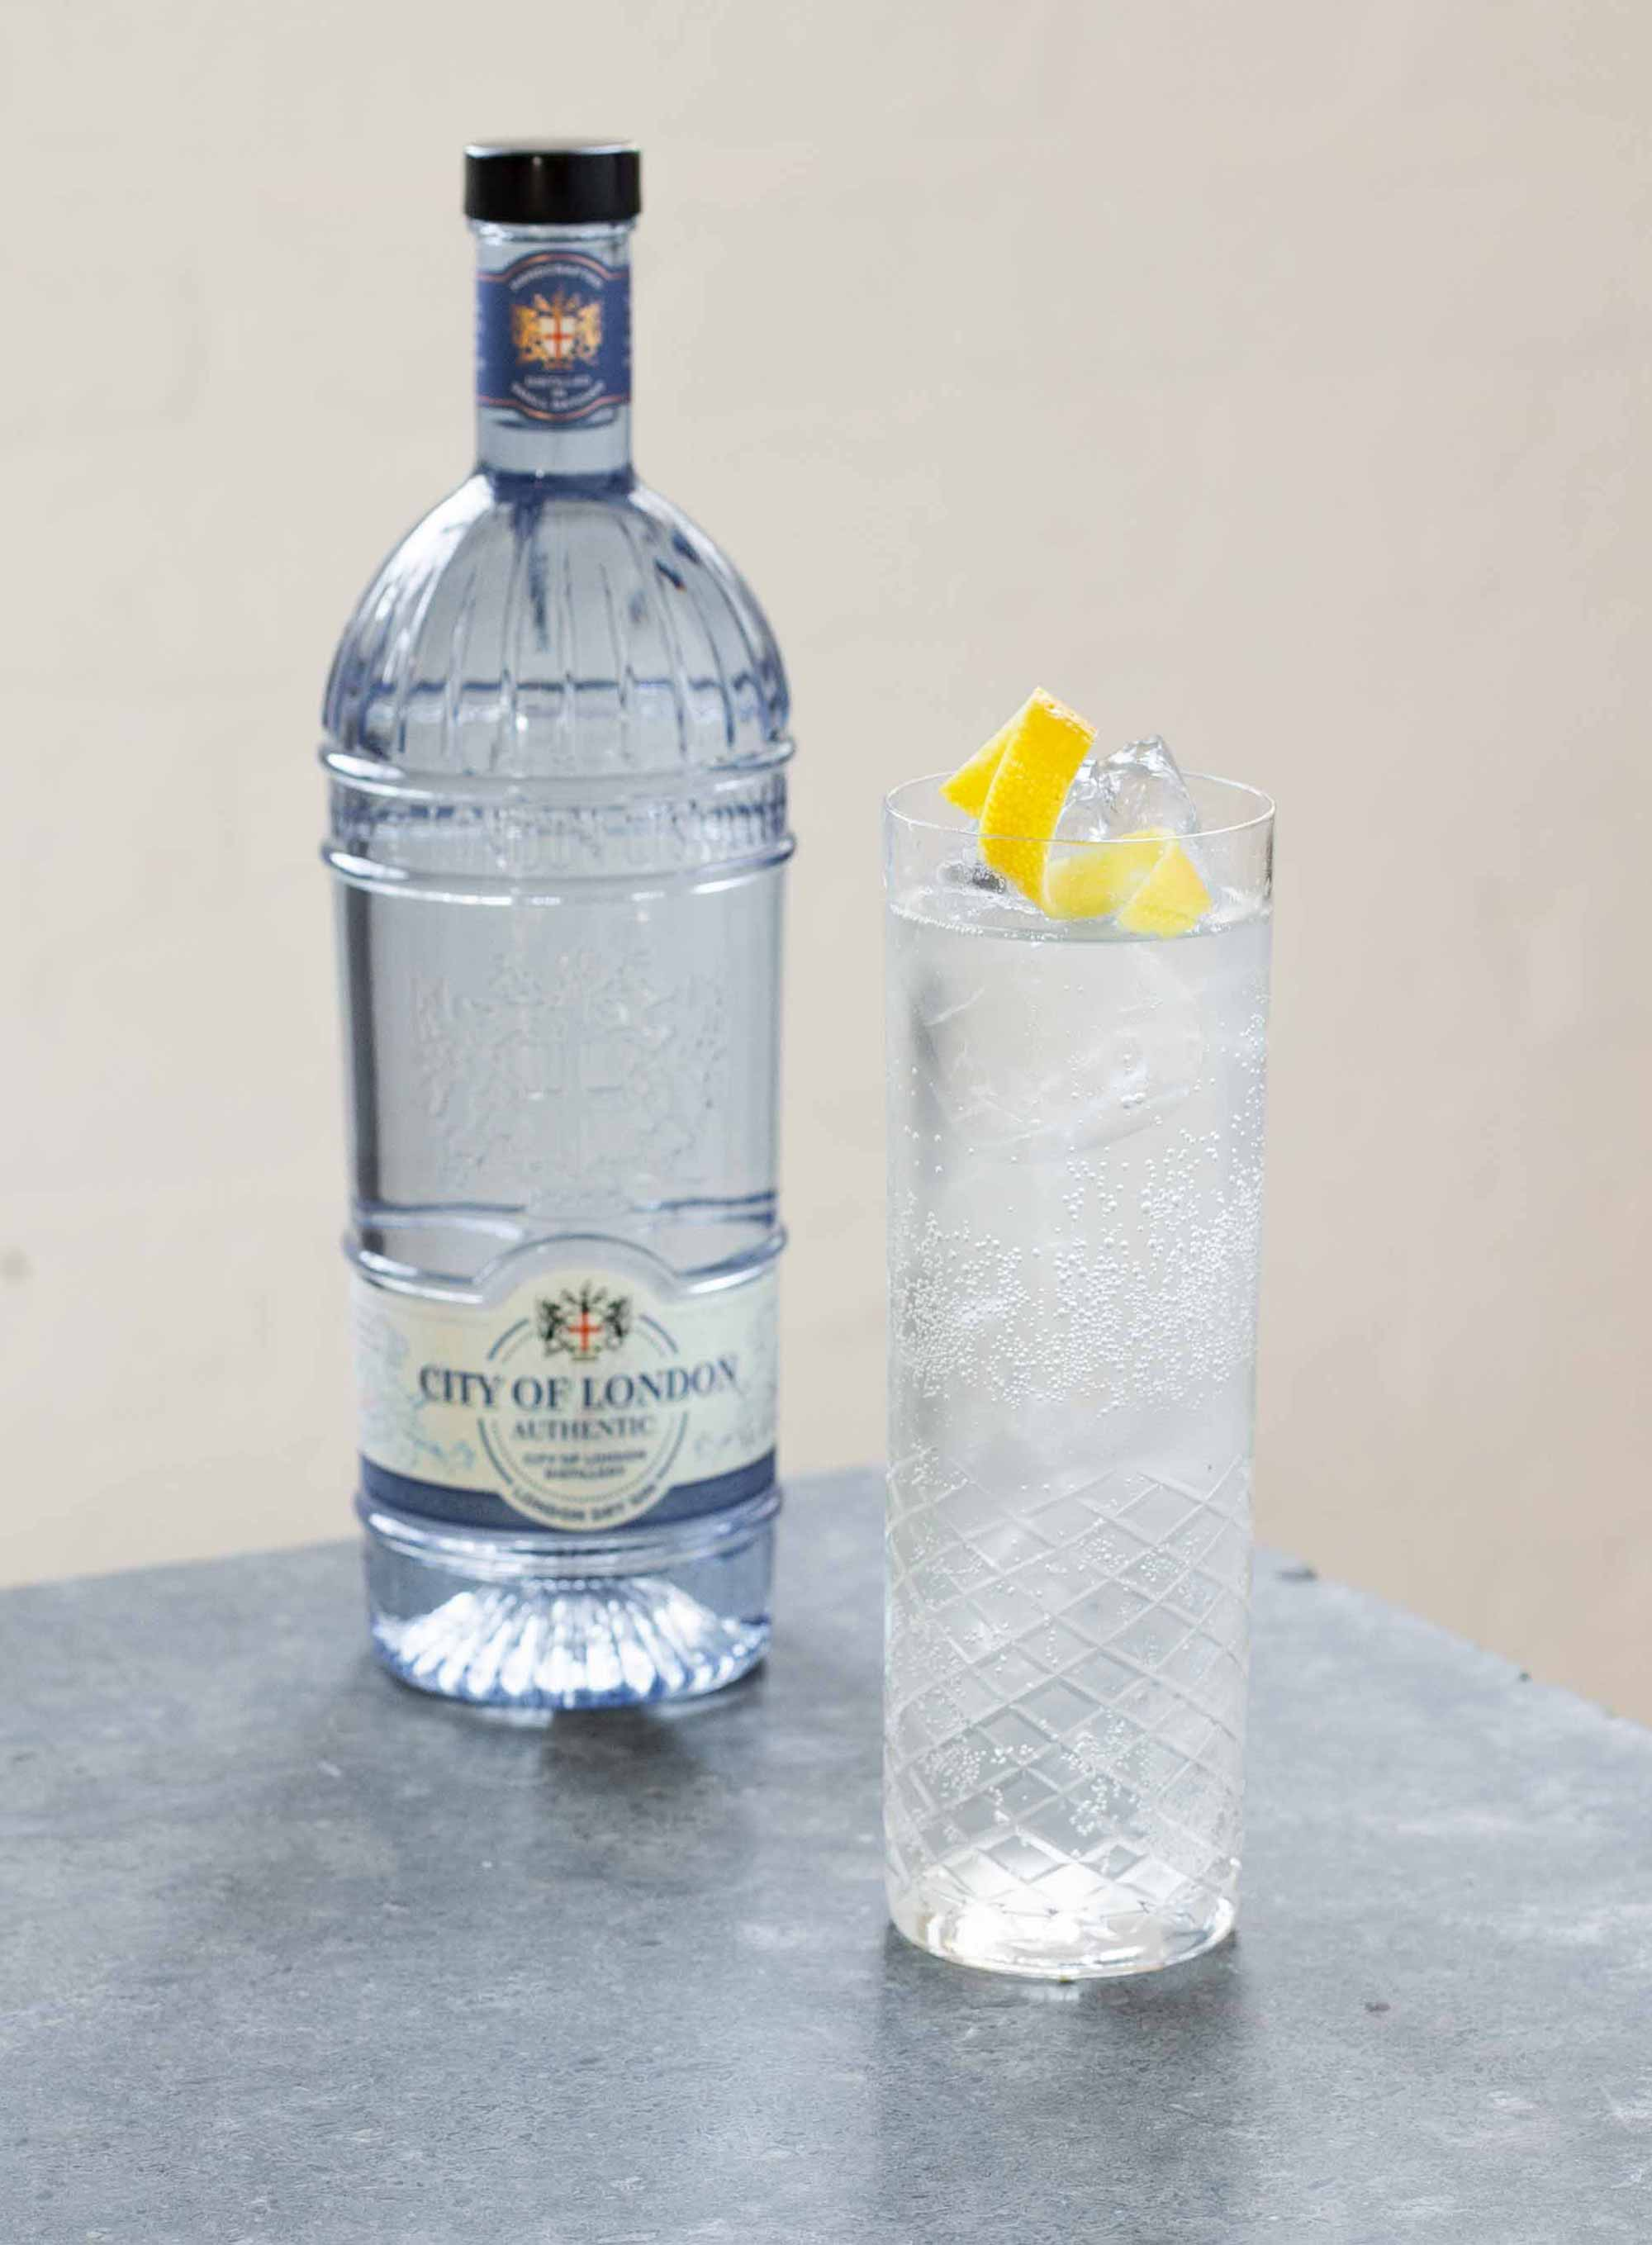 City of London Distillery Gin bundle